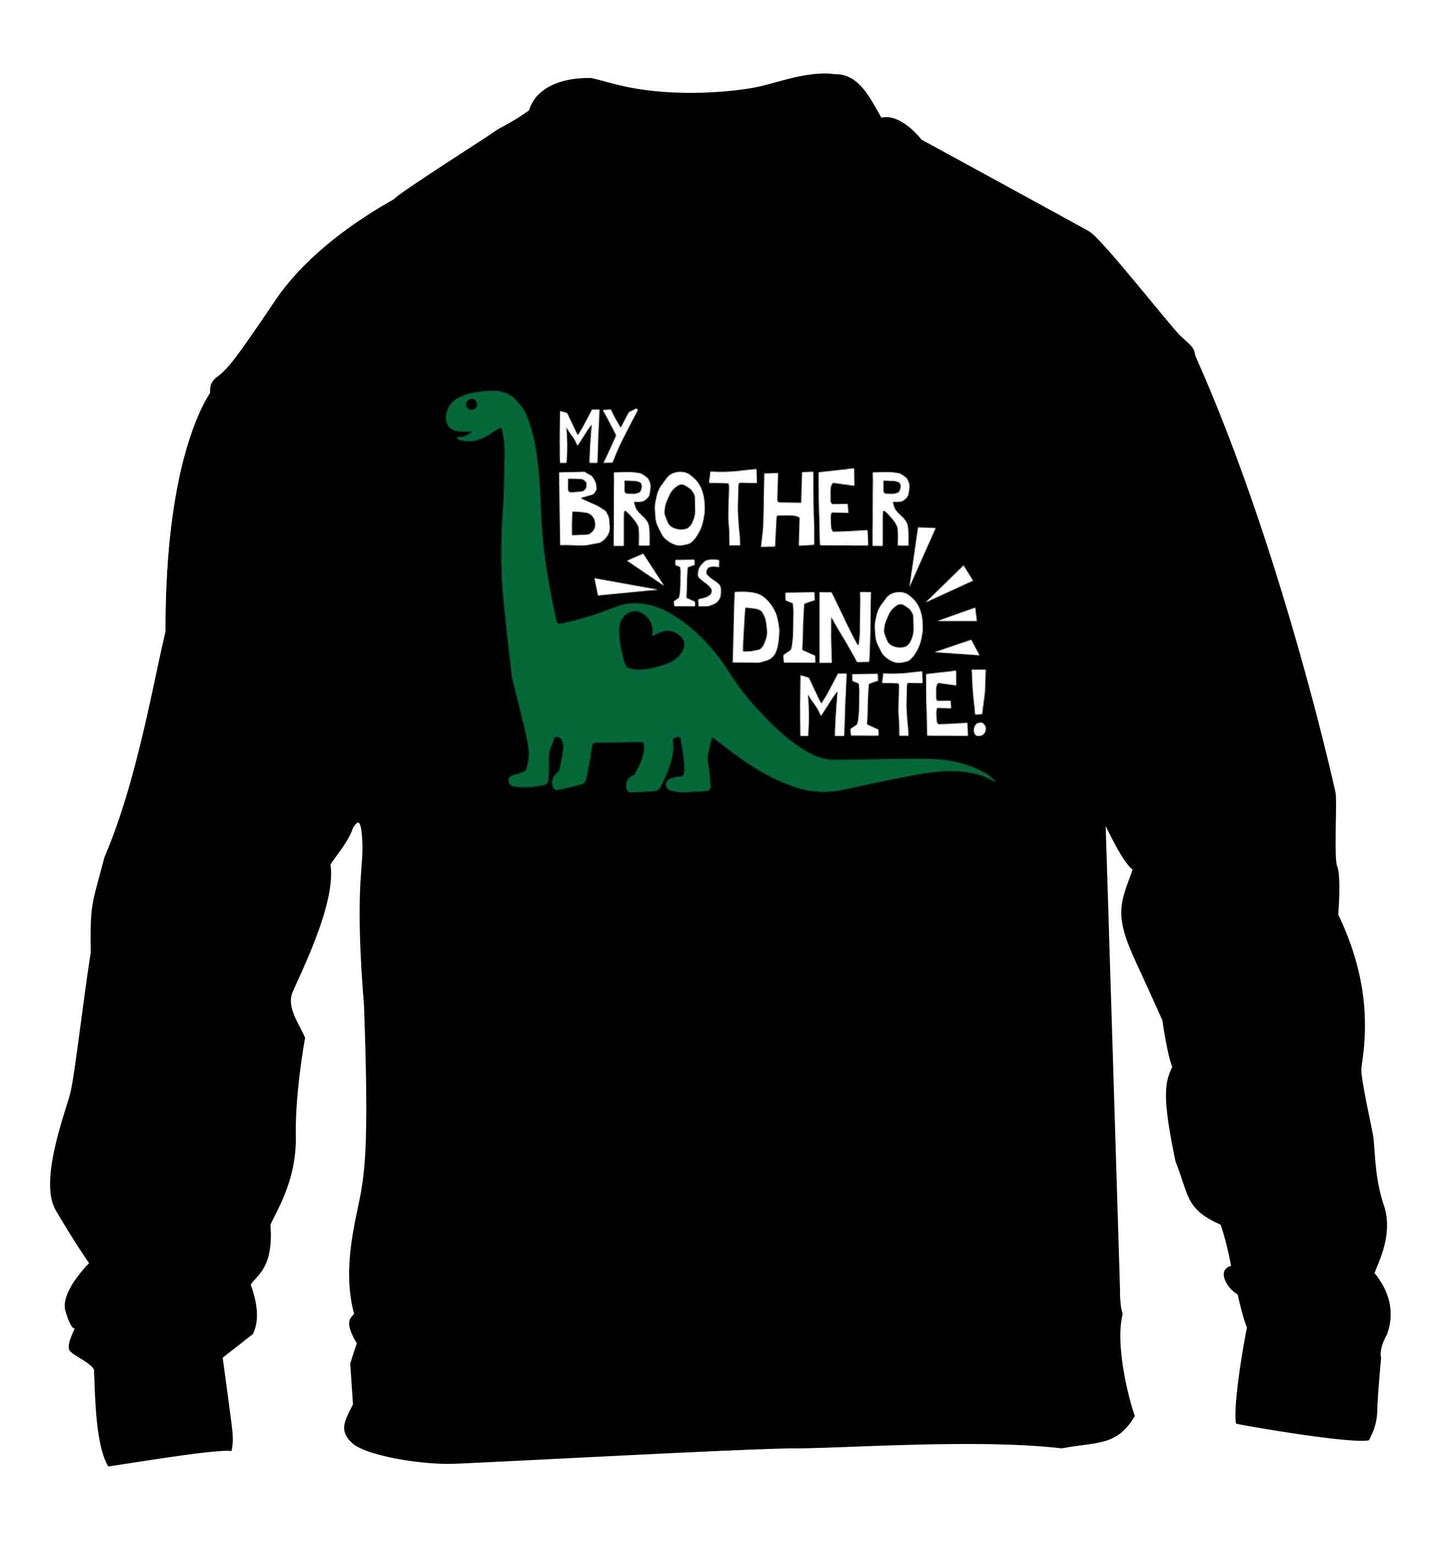 My brother is dinomite! children's black sweater 12-13 Years